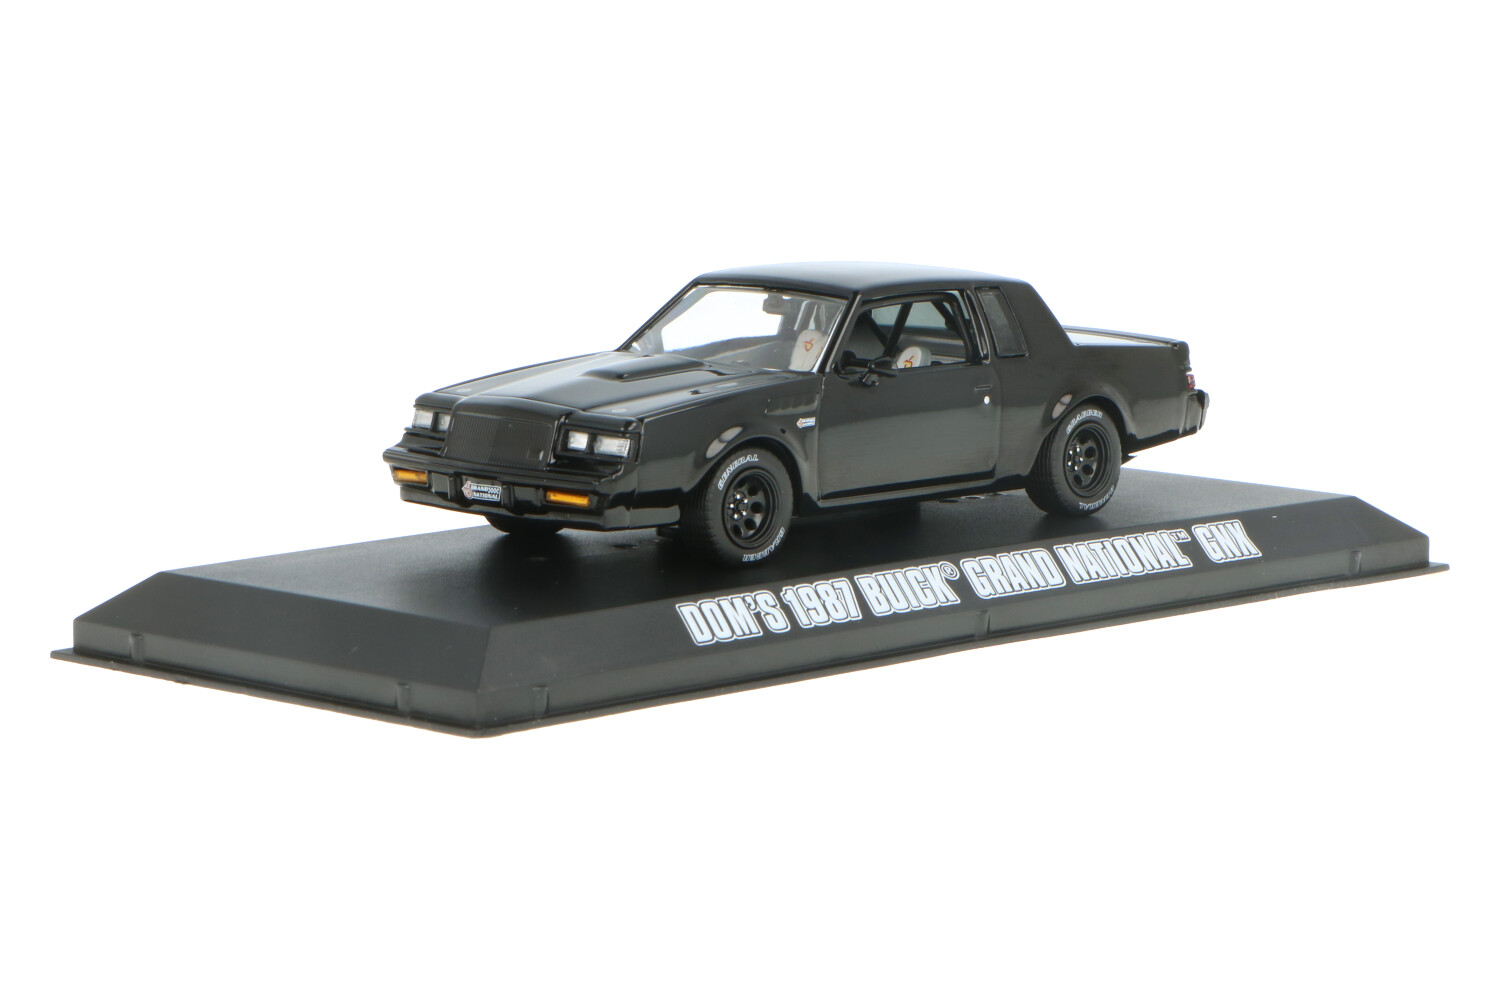 Buick Grand National GNX 'Dom's 1987 Buick' - Modelauto schaal 1:43